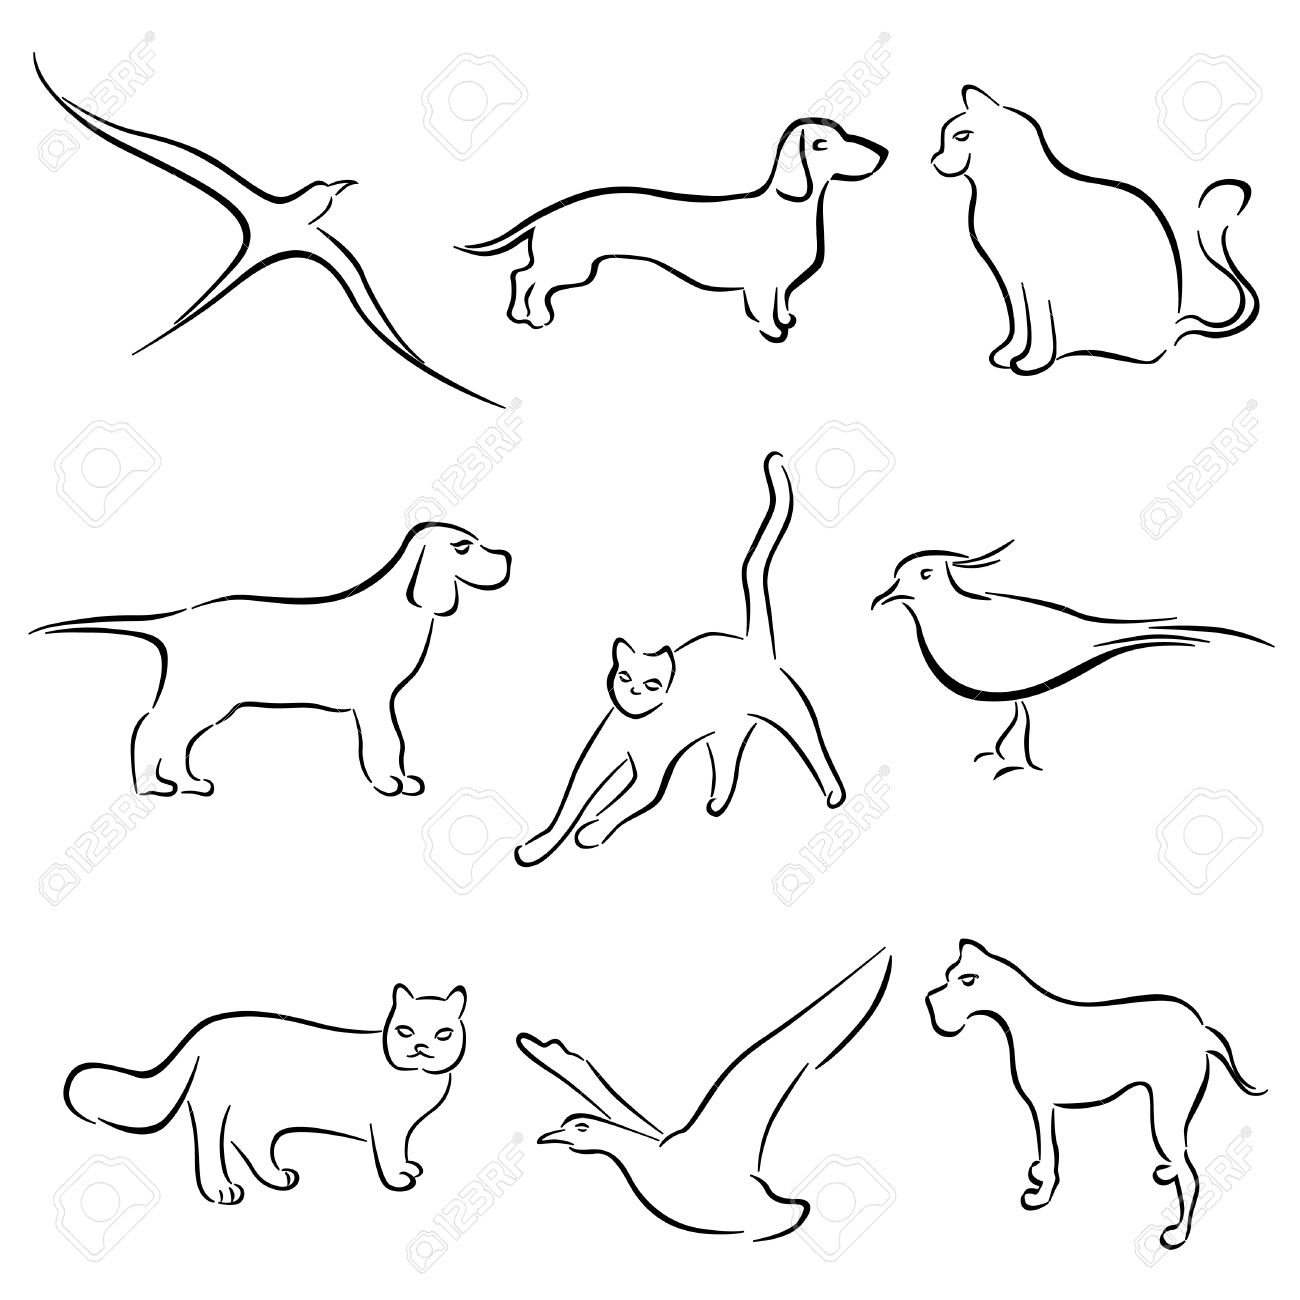 1300x1300 Outline Drawing Of Animals Dog, Cat, Rabbit Animal Drawing Vector